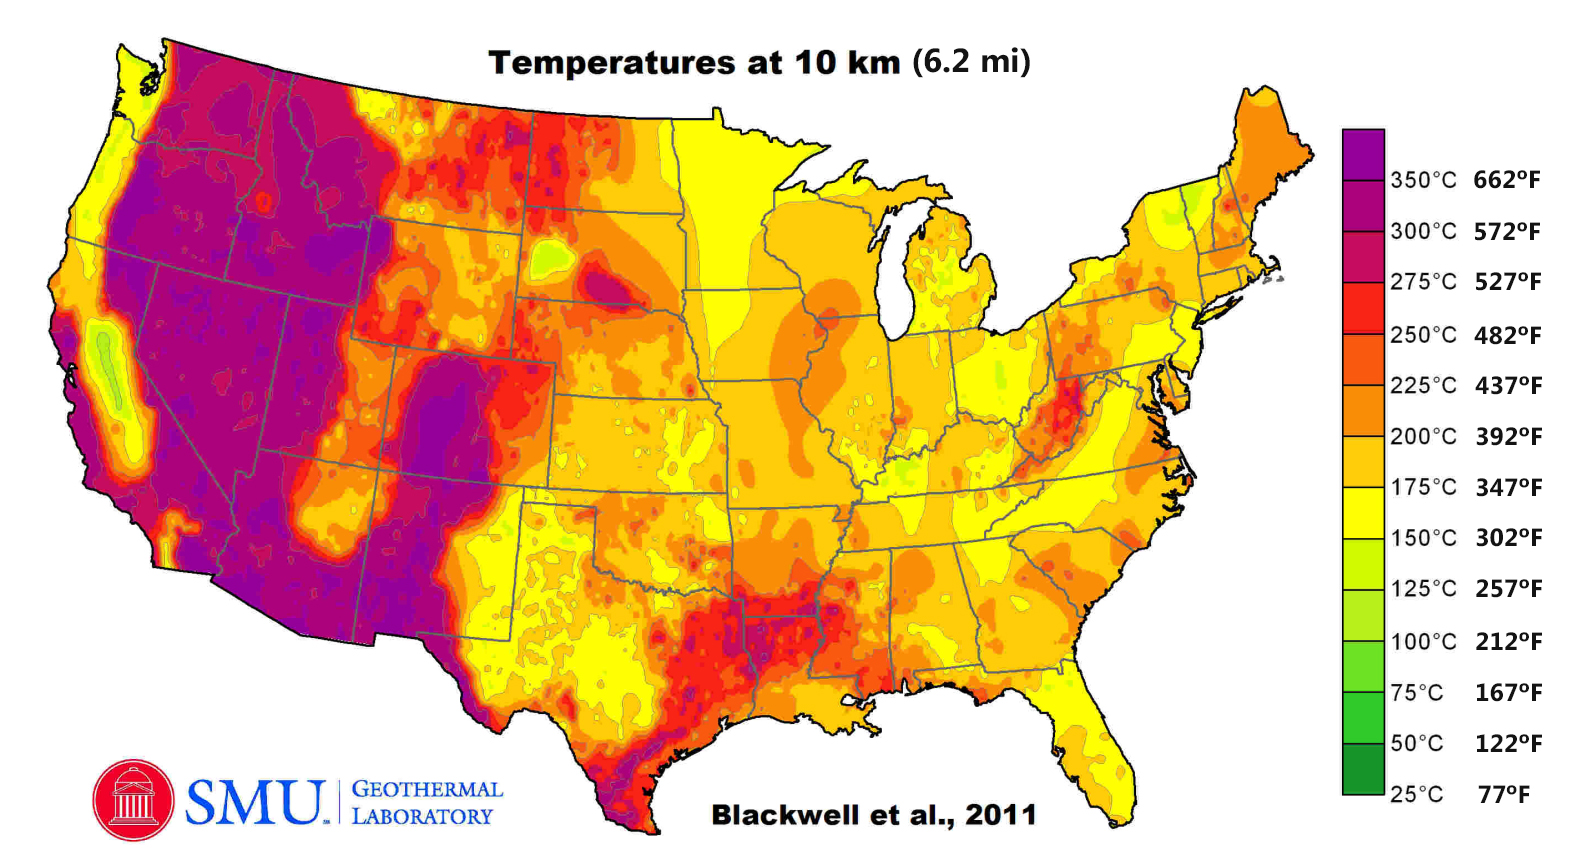 United States: Temperatures at the depth of 10 km